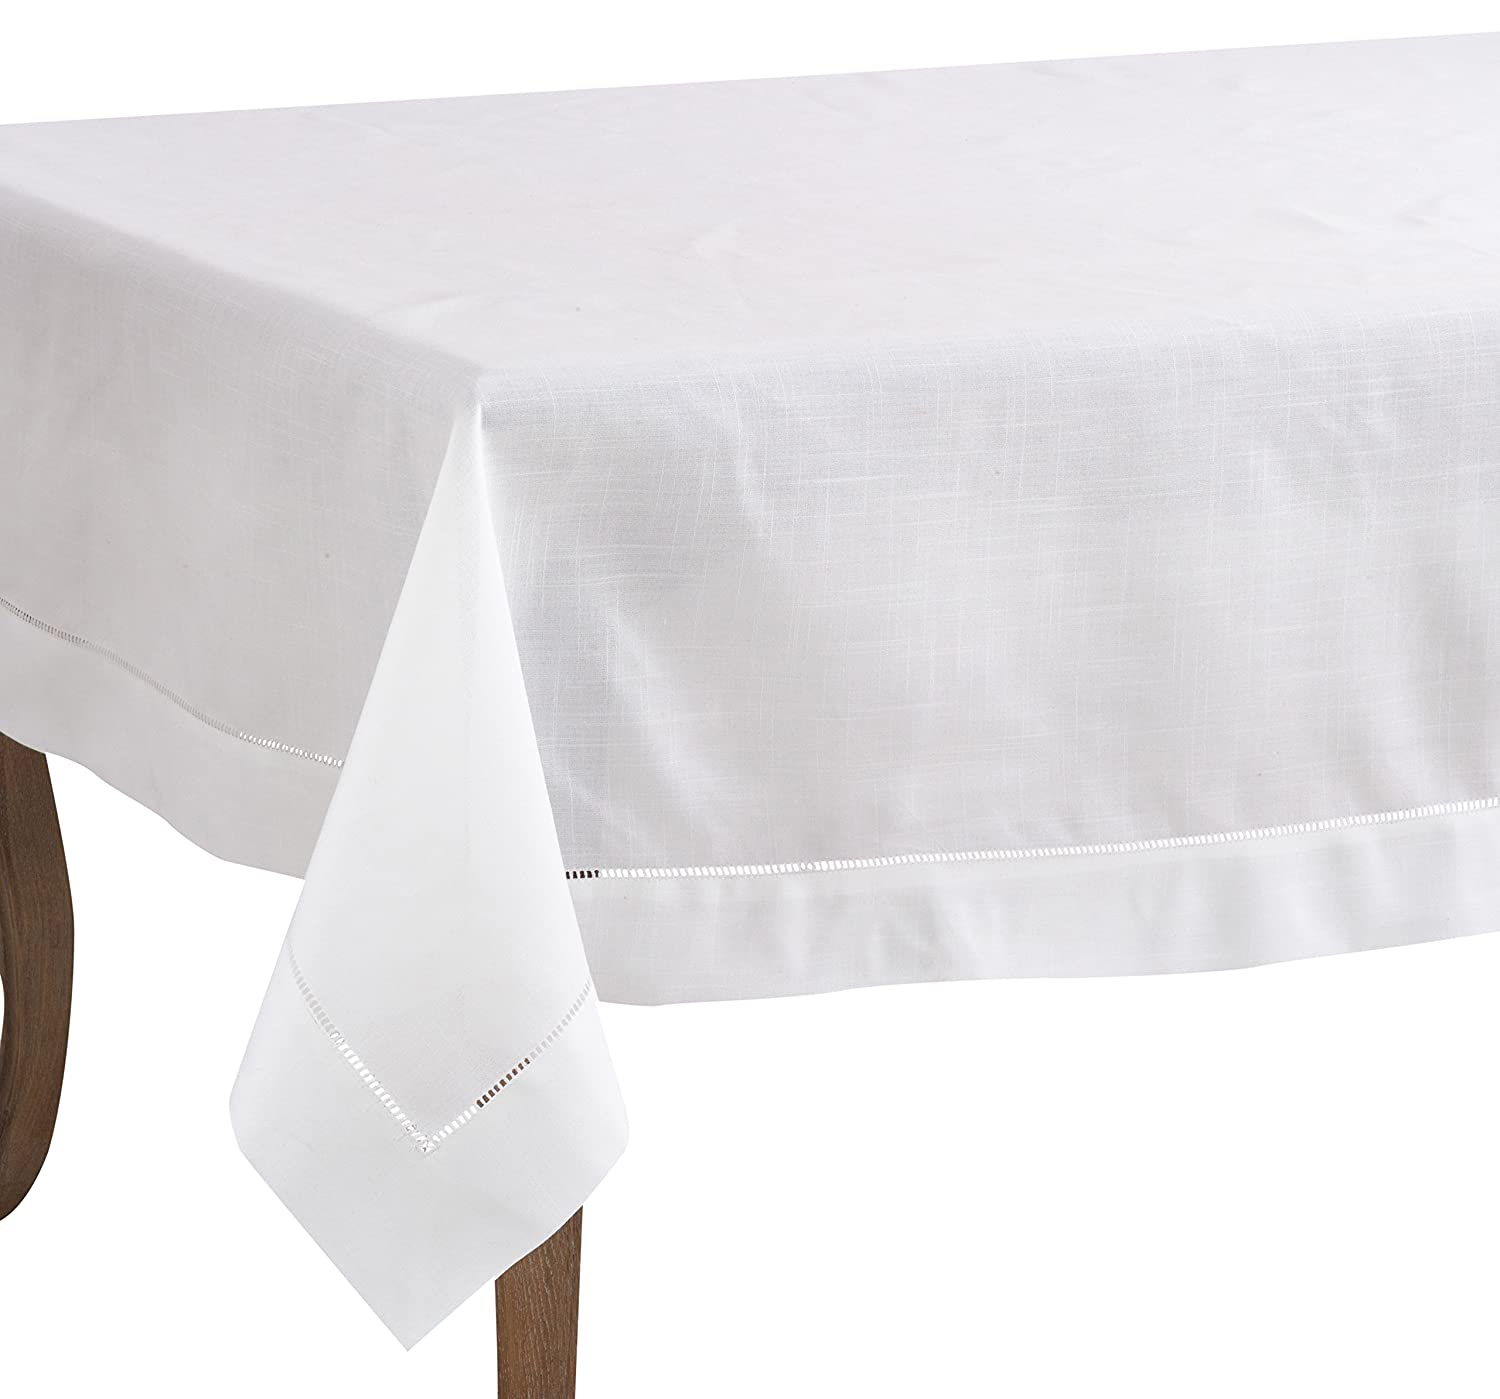 70  x 104  SARO LIFESTYLE 6300.W20S Dinner Napkin with Hemstitch Border, White, 20  (Set of 12 pcs)